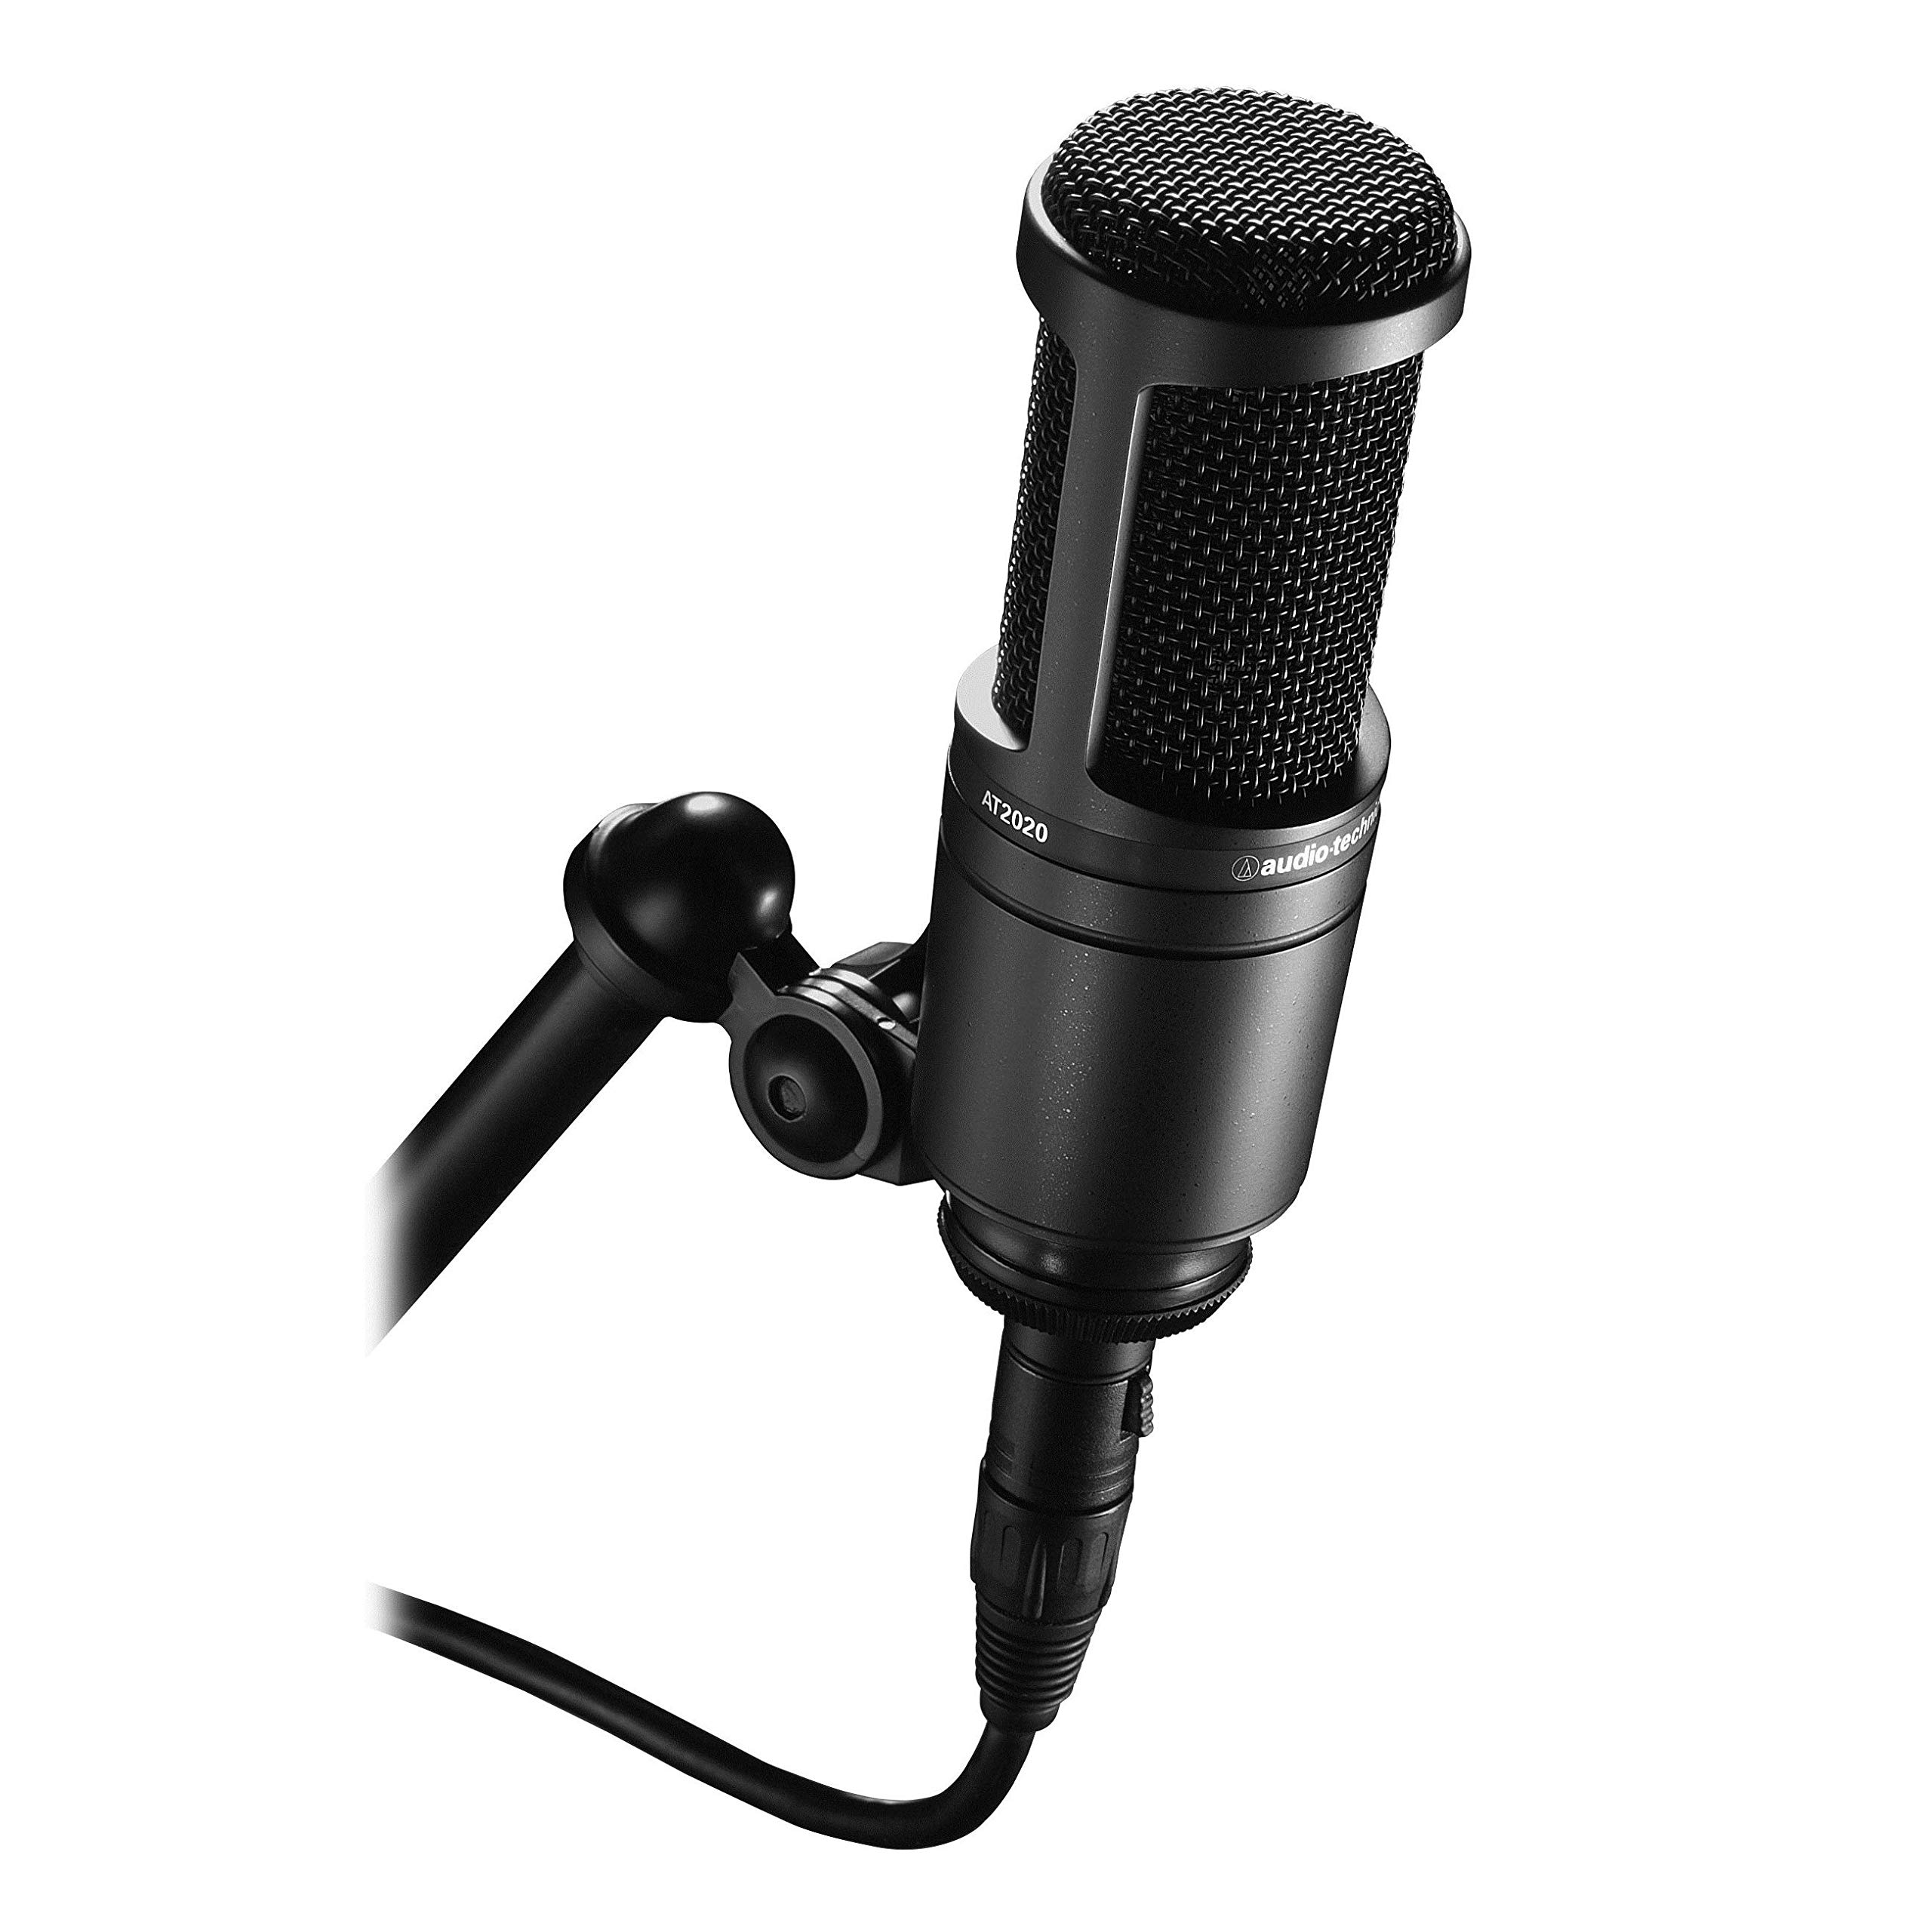 Audio-Technica AT2020 Microphone Cardioïde à électret, Noir product image